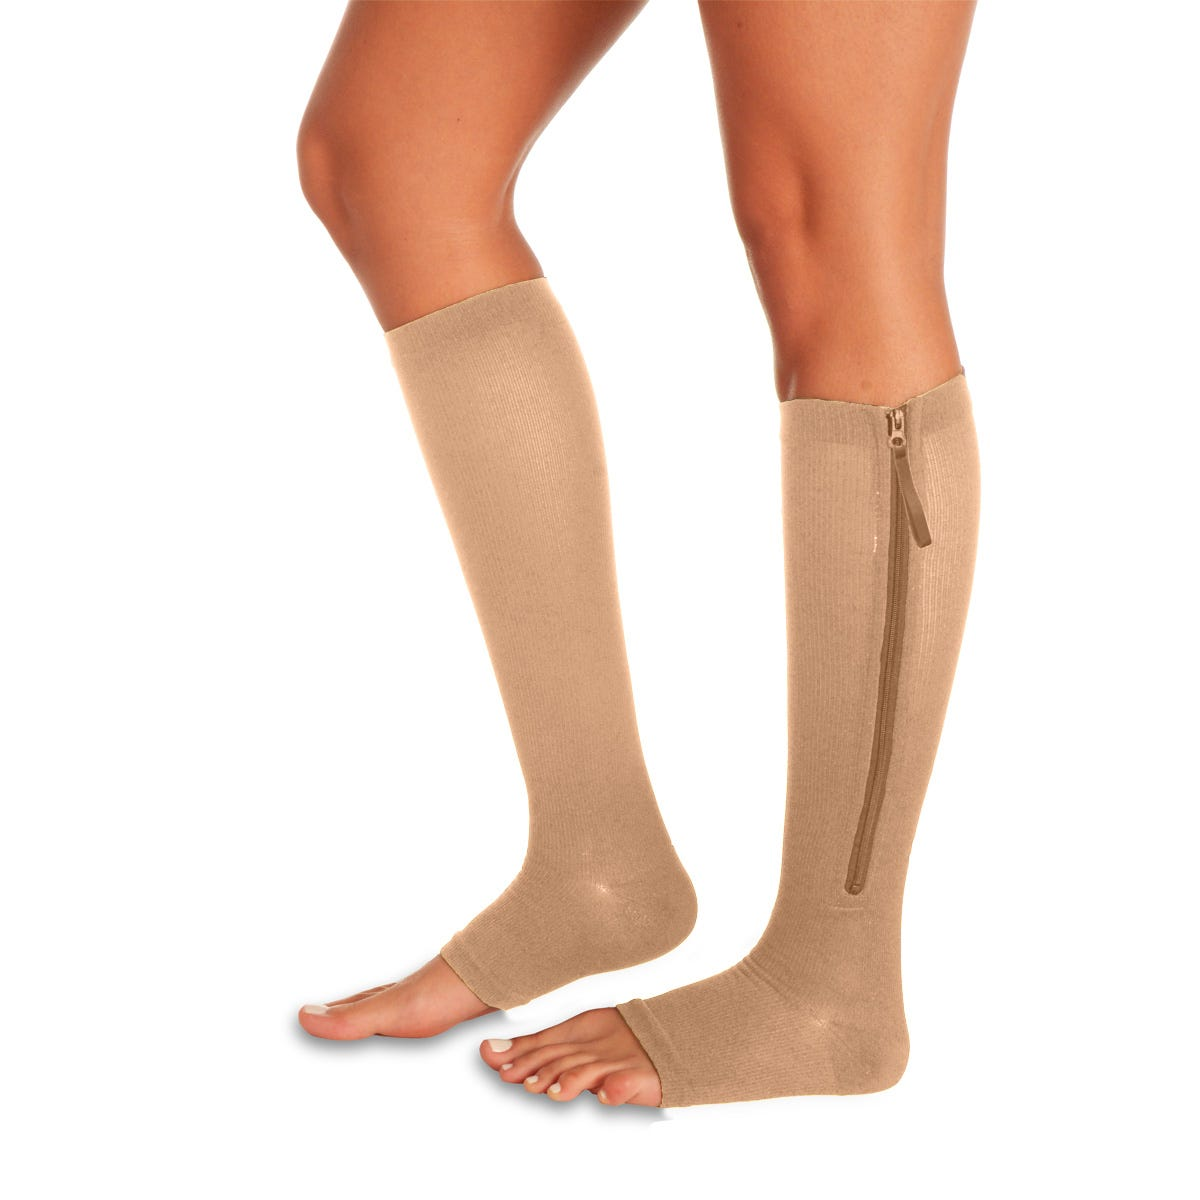 Zippered Day or Night Easy On Compression Support Sock//Stockings With Open Toes